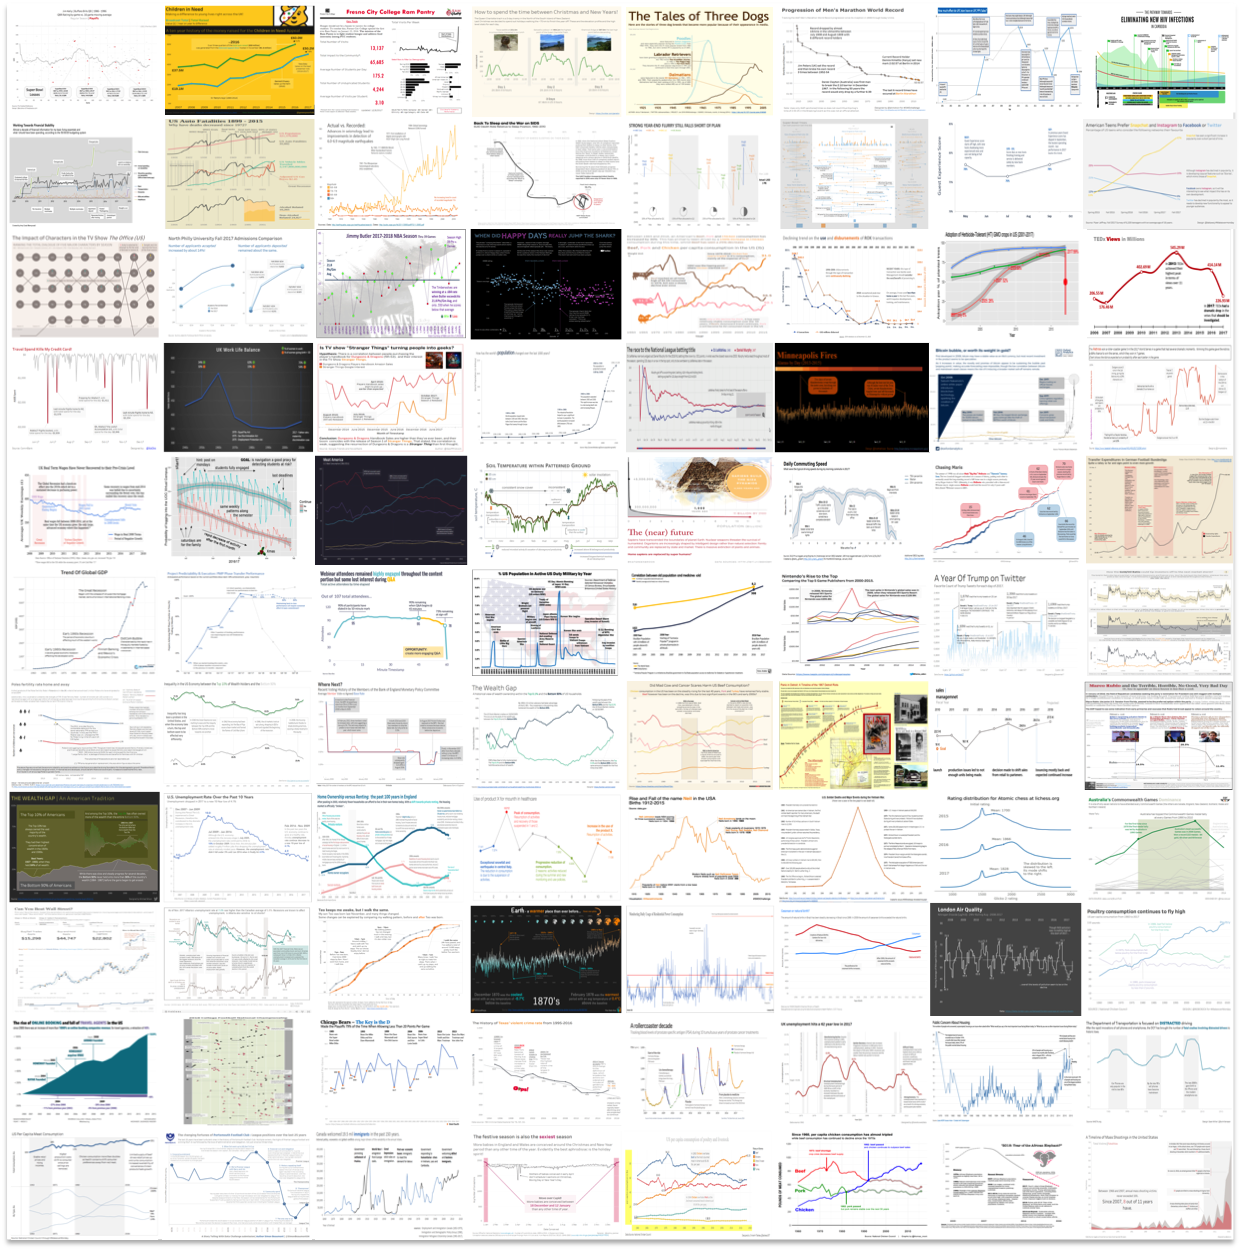 88AnnotatedLineGraphs.png